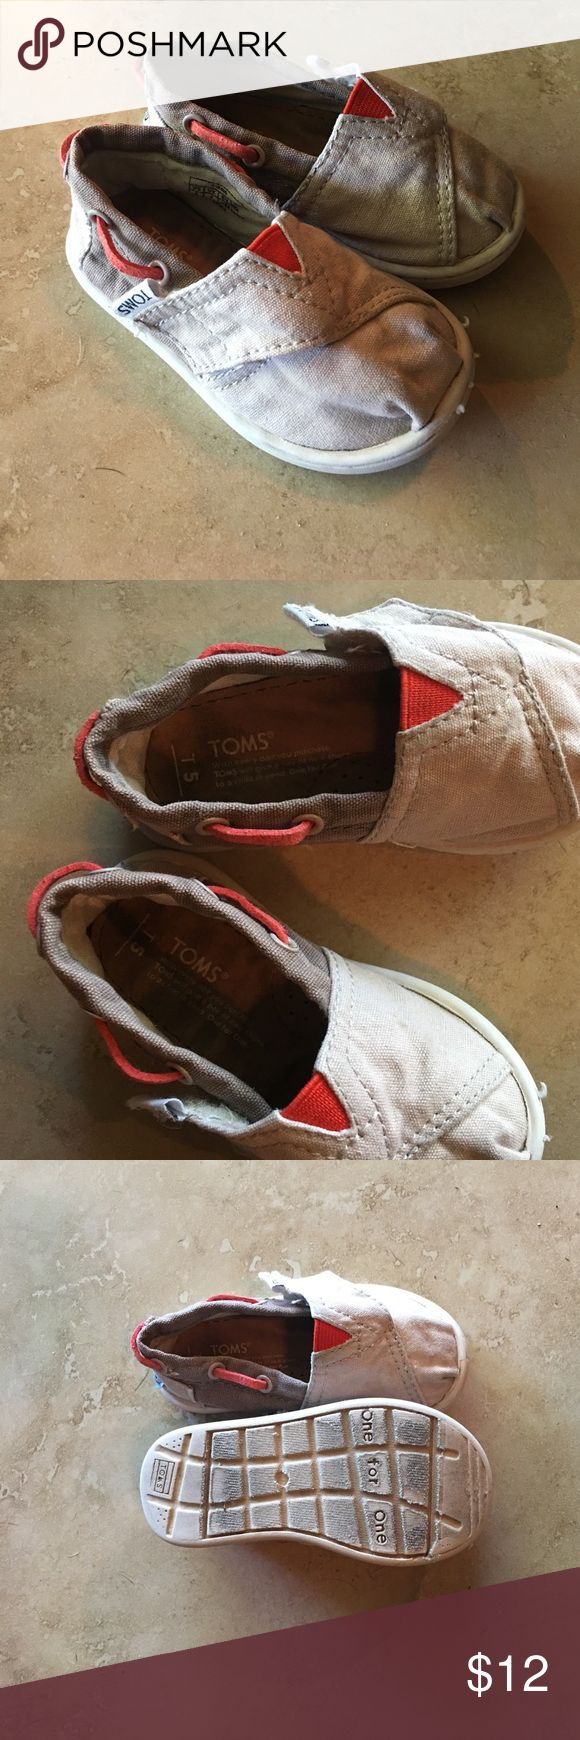 Tiny Toms T5 gray, brown and orange shoes Tiny Toms size T5 gray and brown shoes with orange leather wrapped around the top and orange elastic. In Good condition only light wear. Toms Shoes Baby & Walker